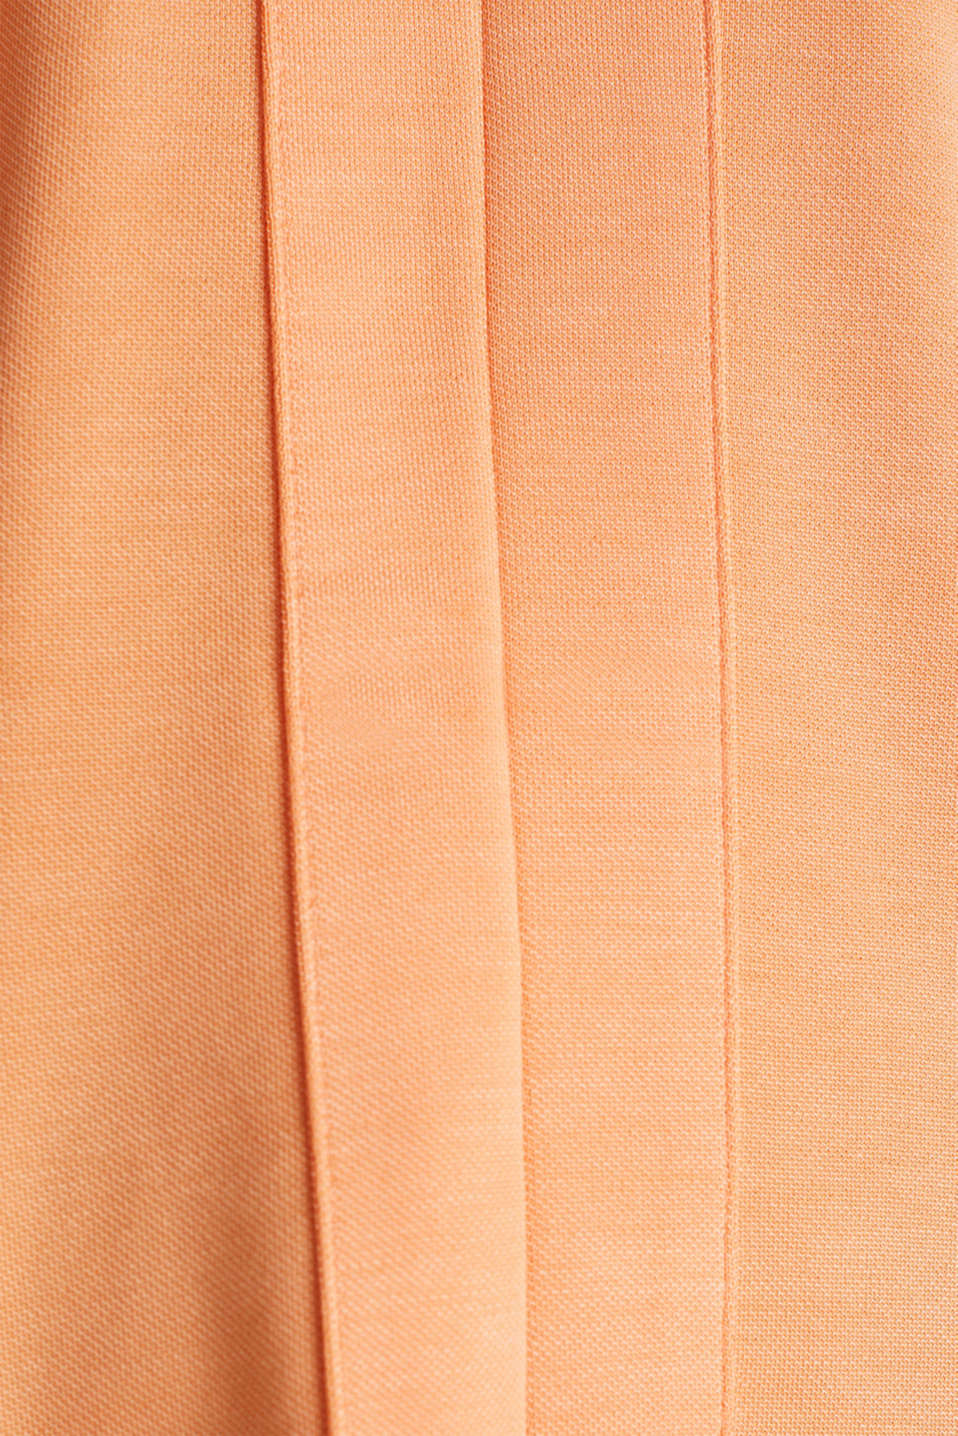 Piqué top with a patch pockets, ORANGE, detail image number 3